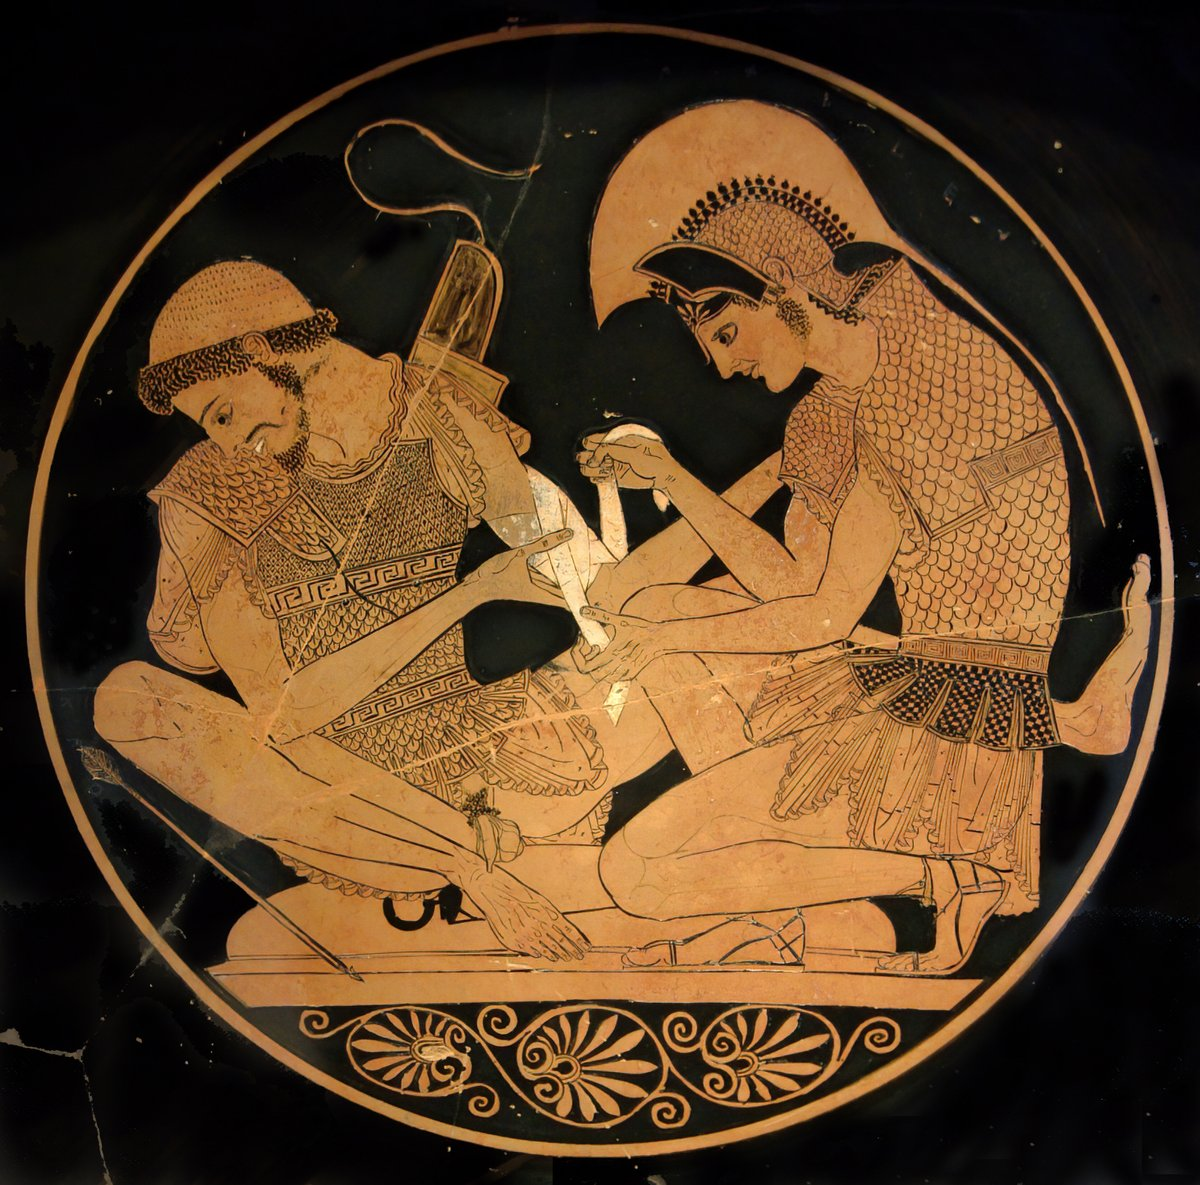 Achilles heals Patroclus, since he learned the arts of medicine from his tutor, Chiron. Both men are believed to be wearing linothoraxes.[citation needed] attic red-figure kylix, signed by Sosias, c. 500 BC, Antikensammlung Berlin